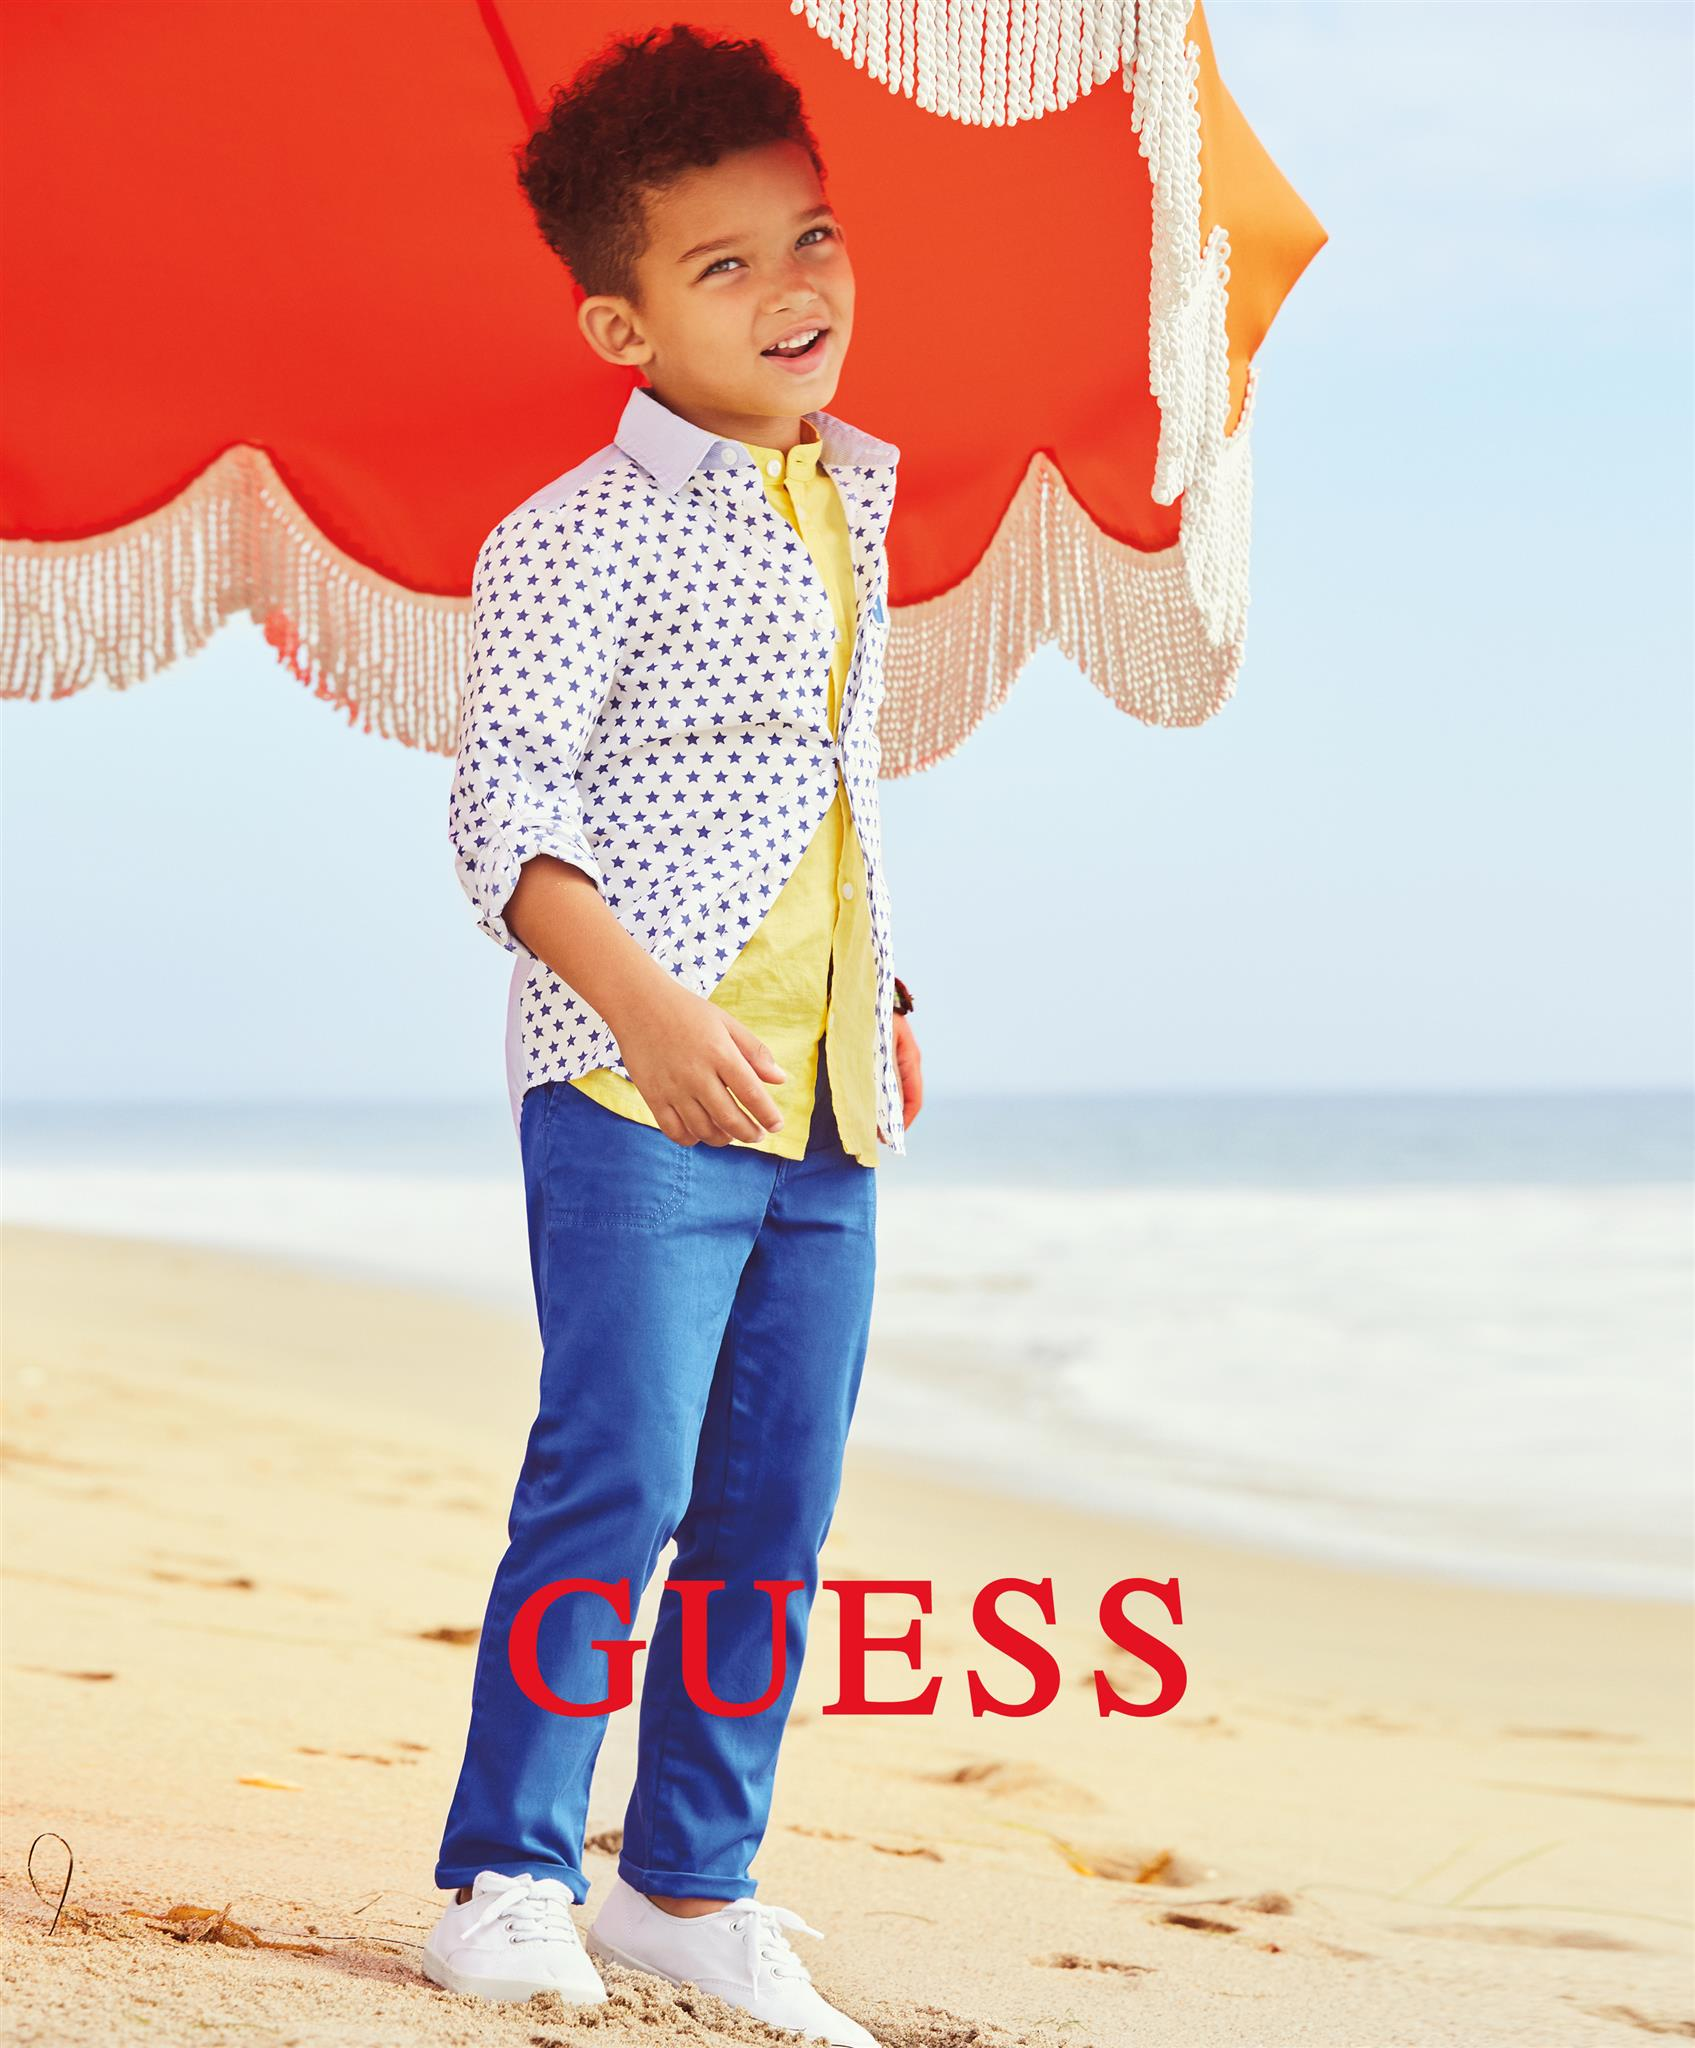 Children Fashion Photography | Guess Kids | VIKA POBEDA